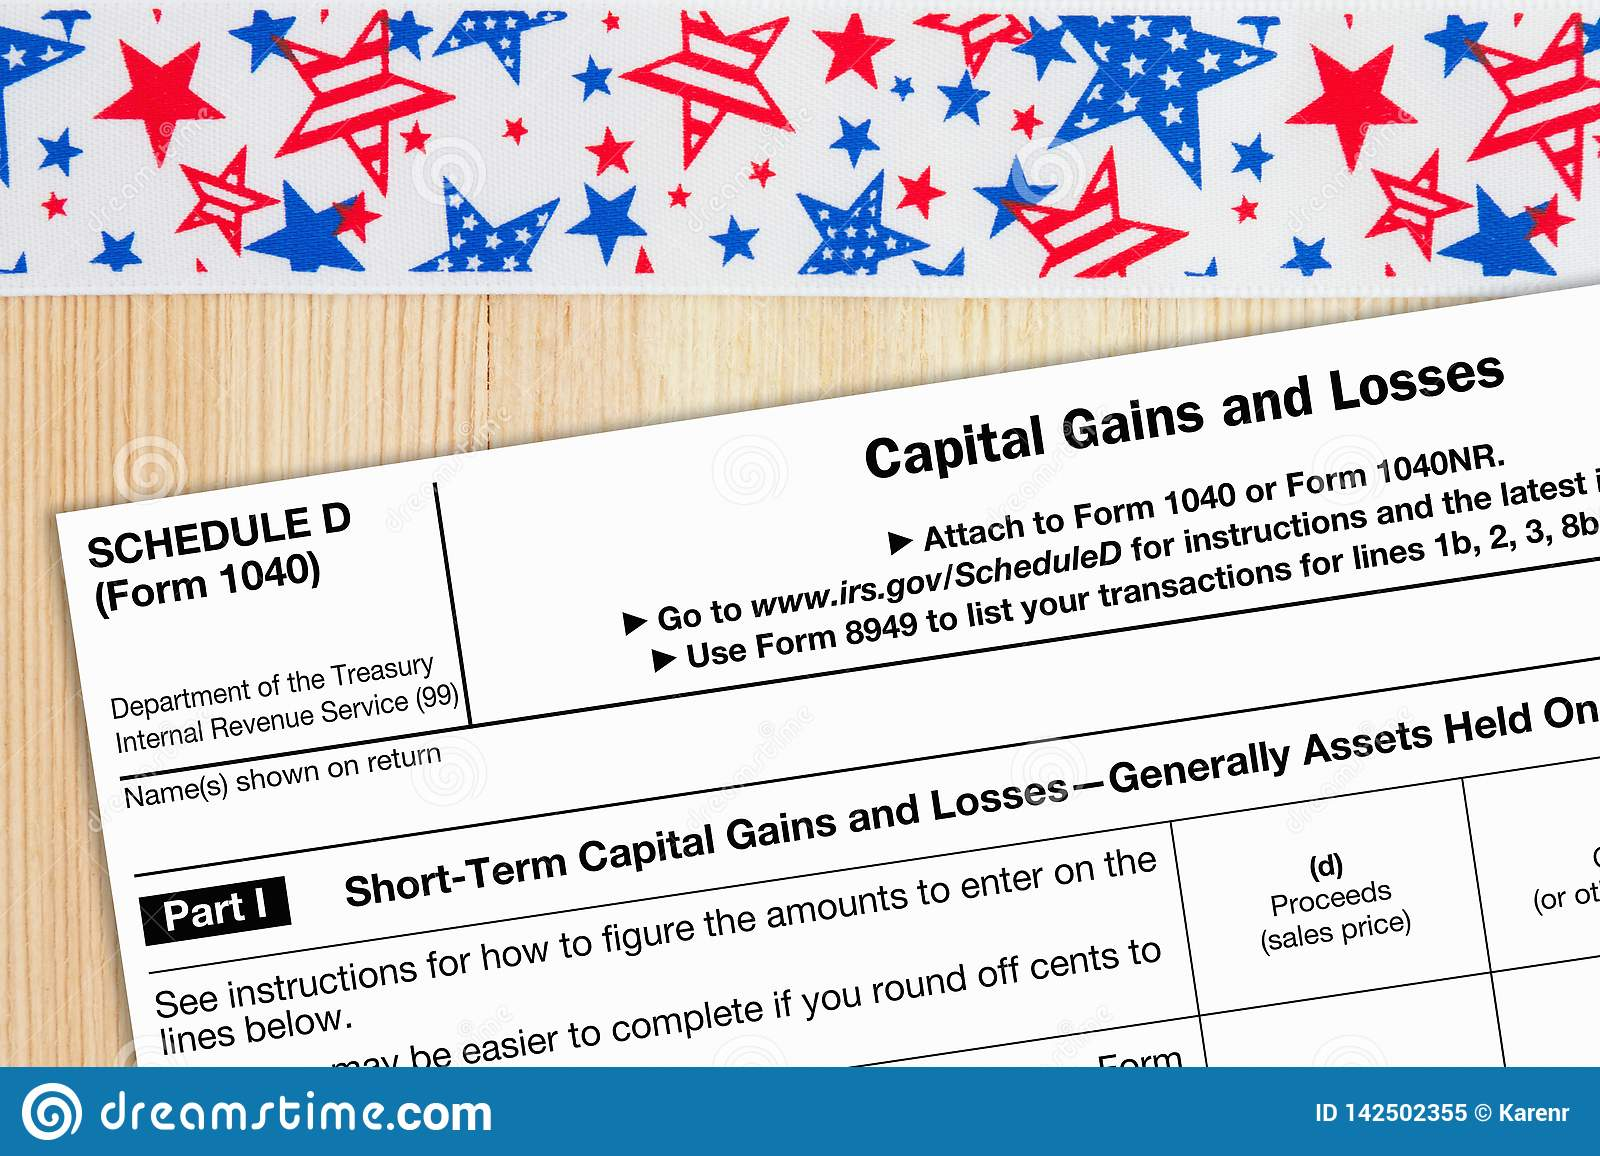 A US Federal Tax 1040 Schedule D Income Tax Form Editorial Image